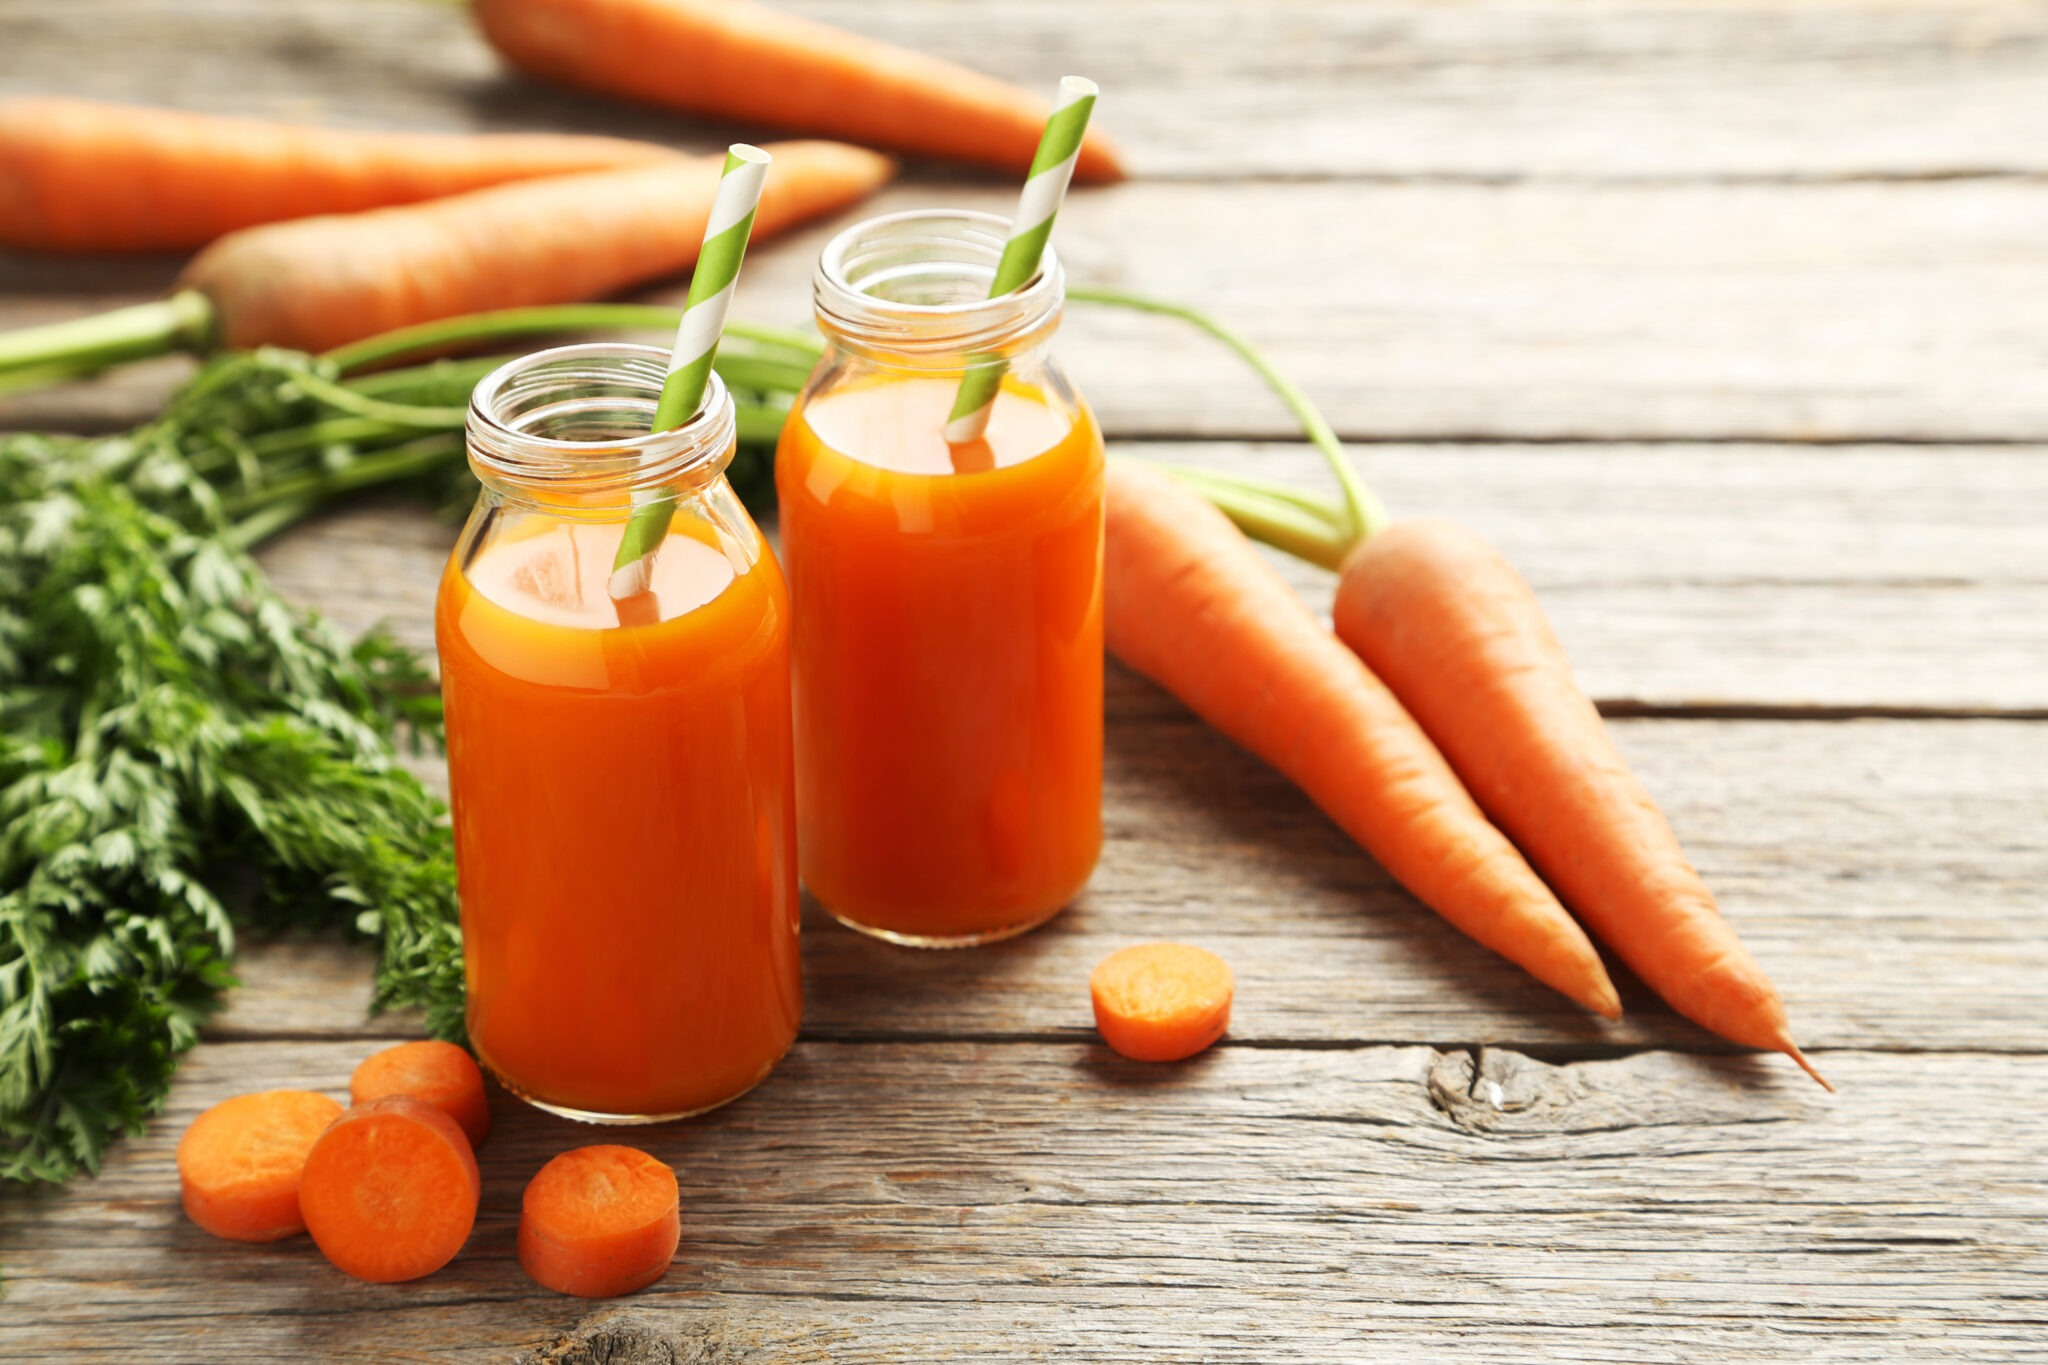 carrot benefits for health